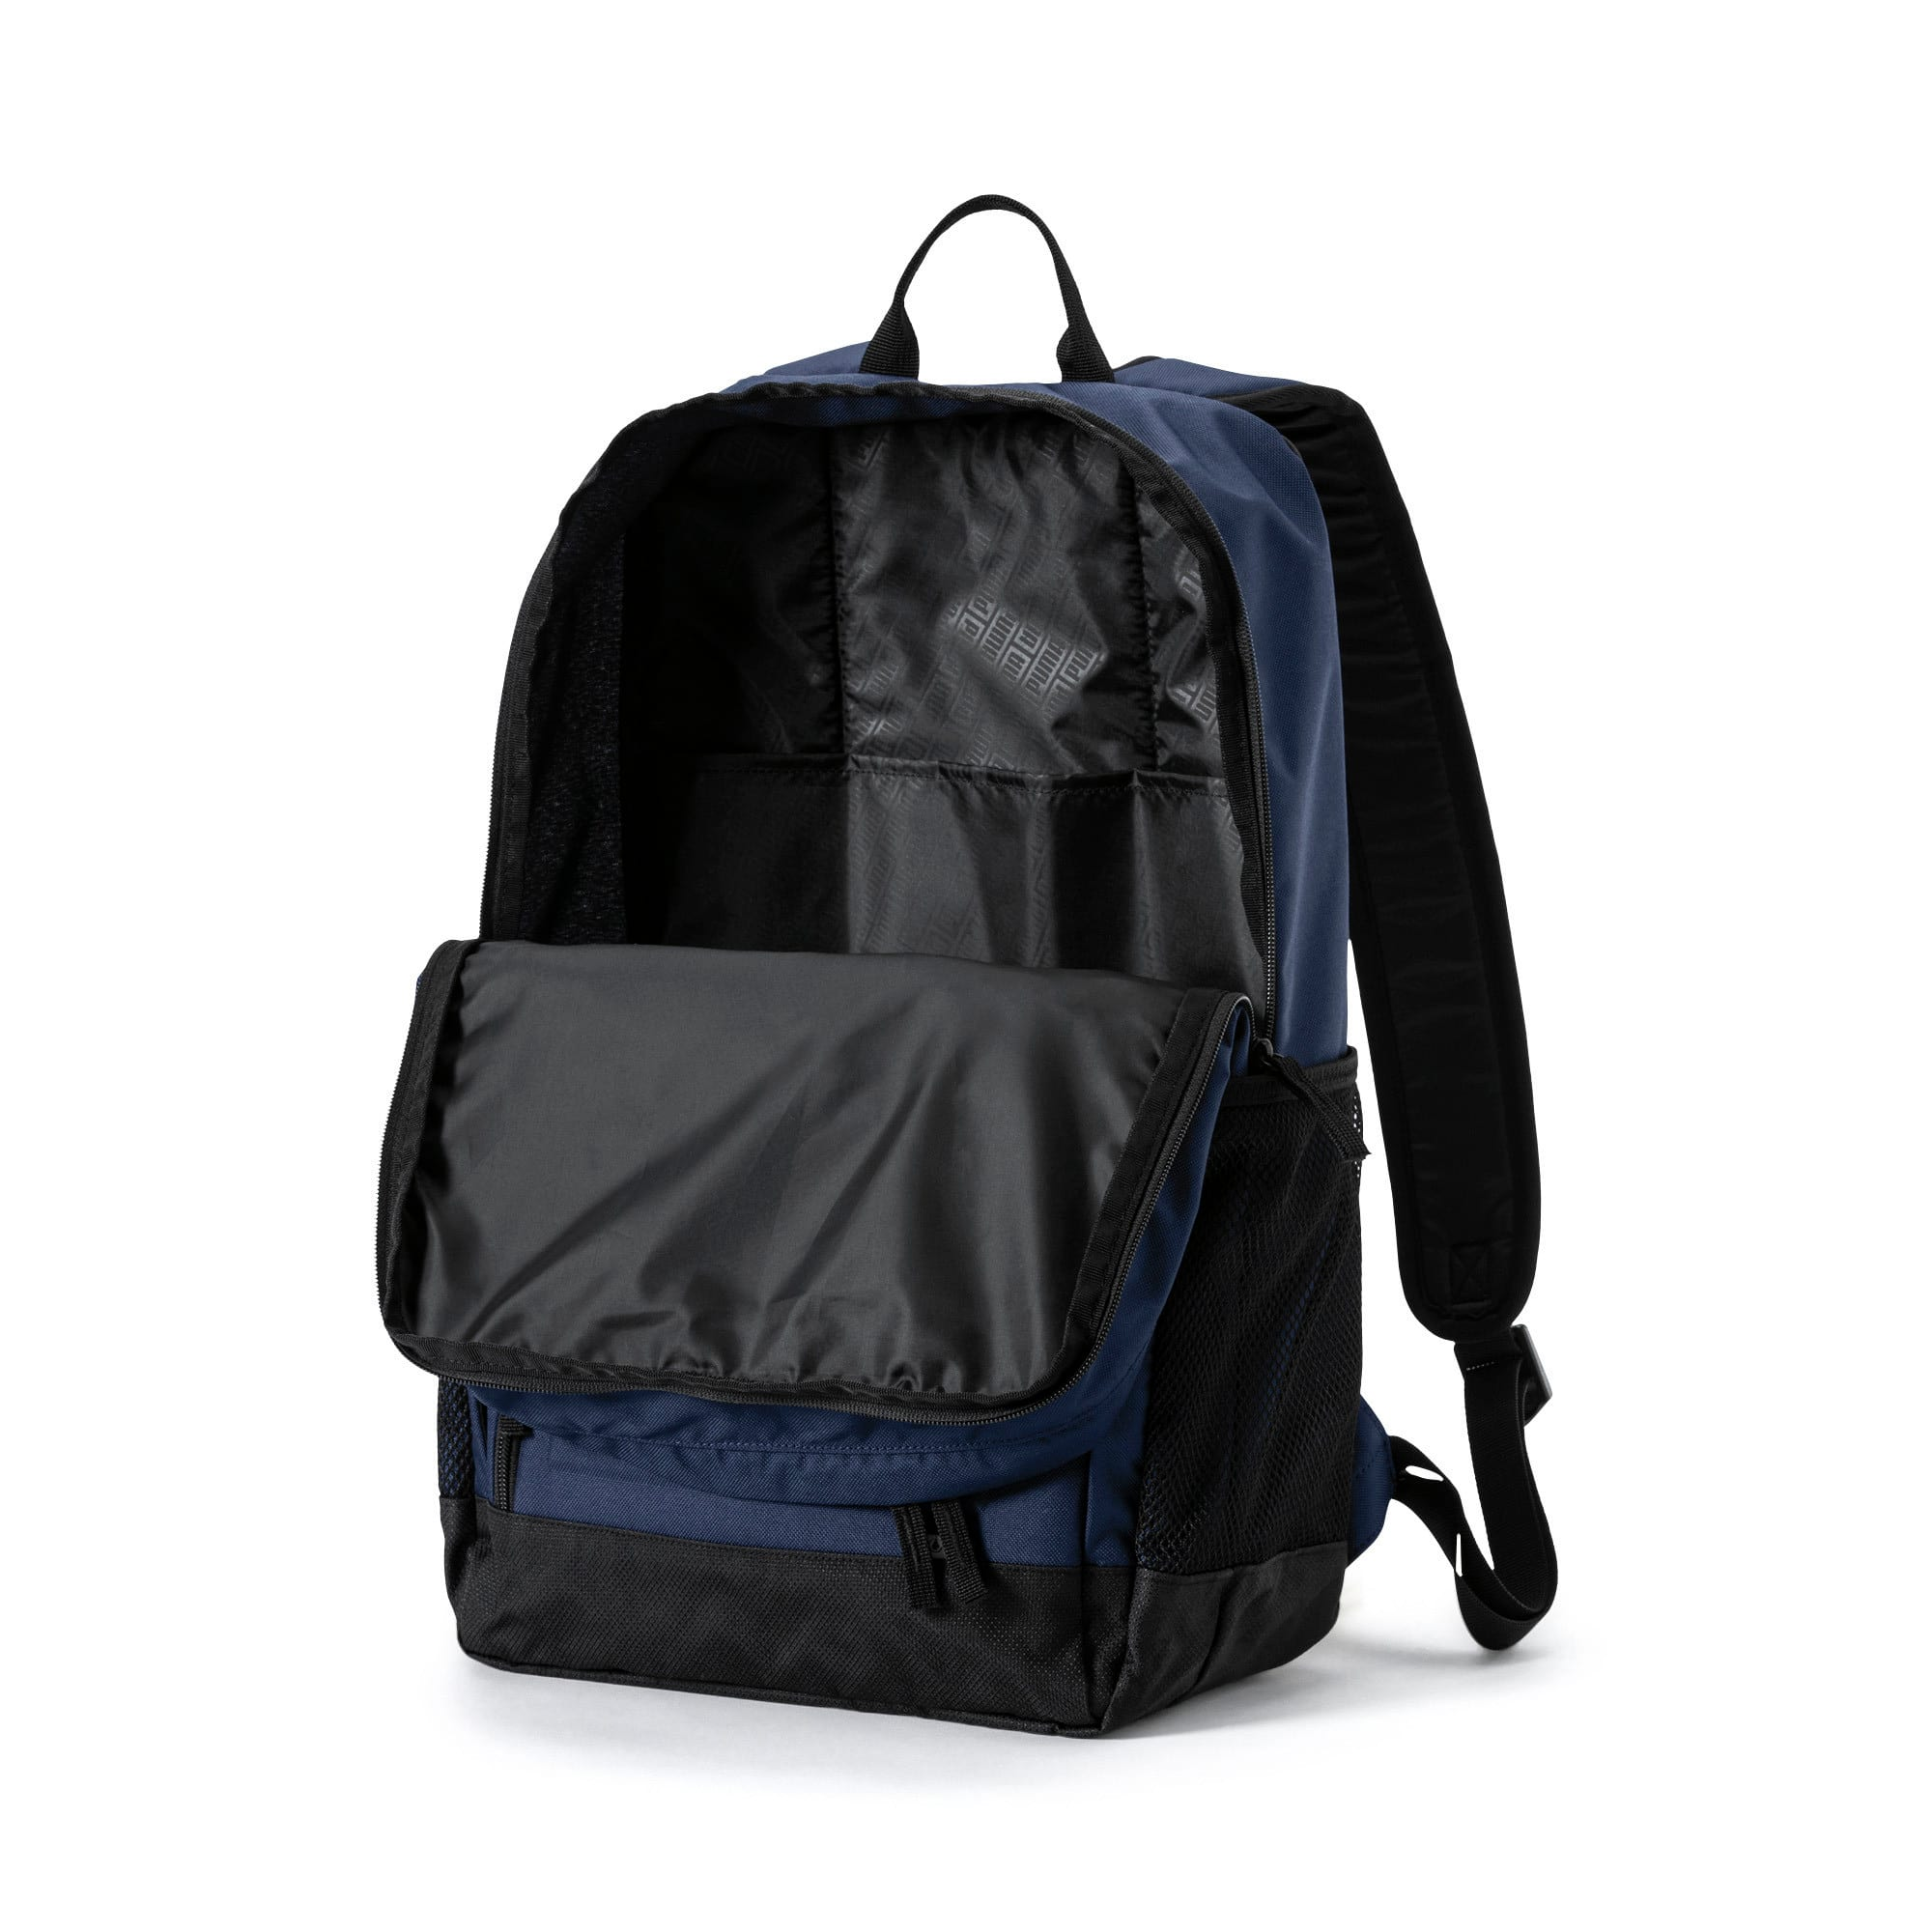 Thumbnail 3 of Square Backpack, Peacoat, medium-IND